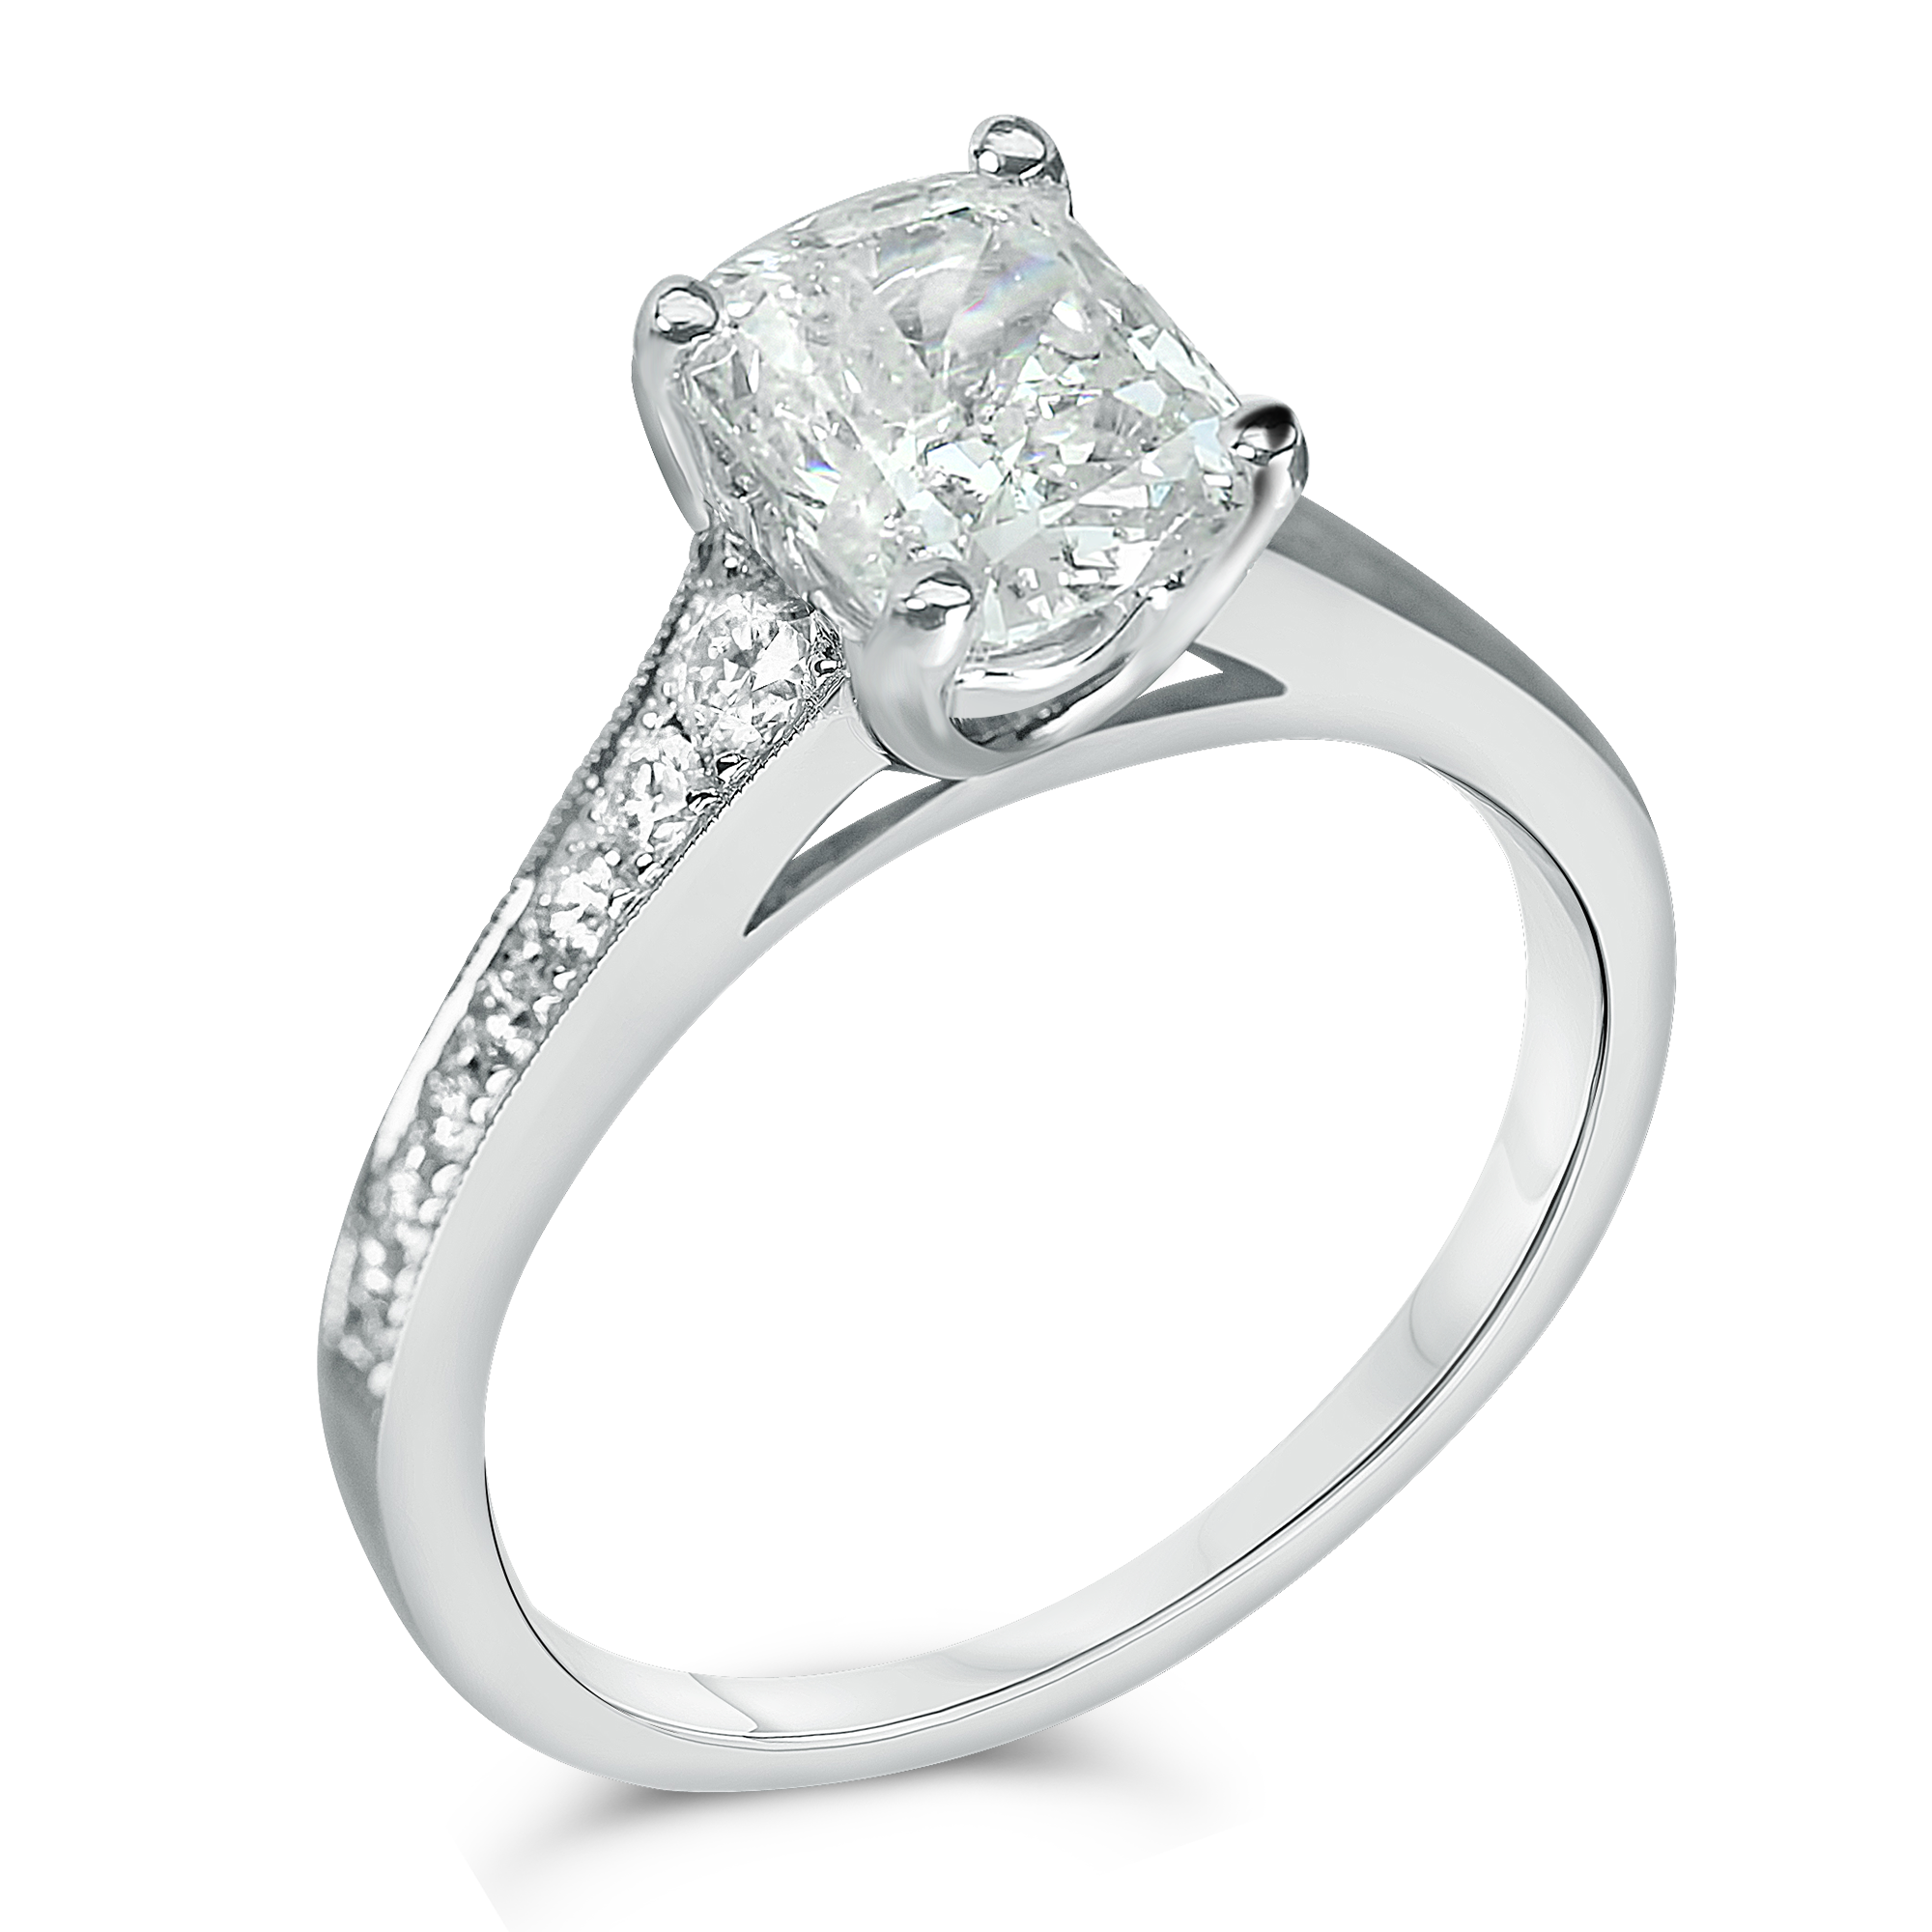 tapered pave ring with cushion center